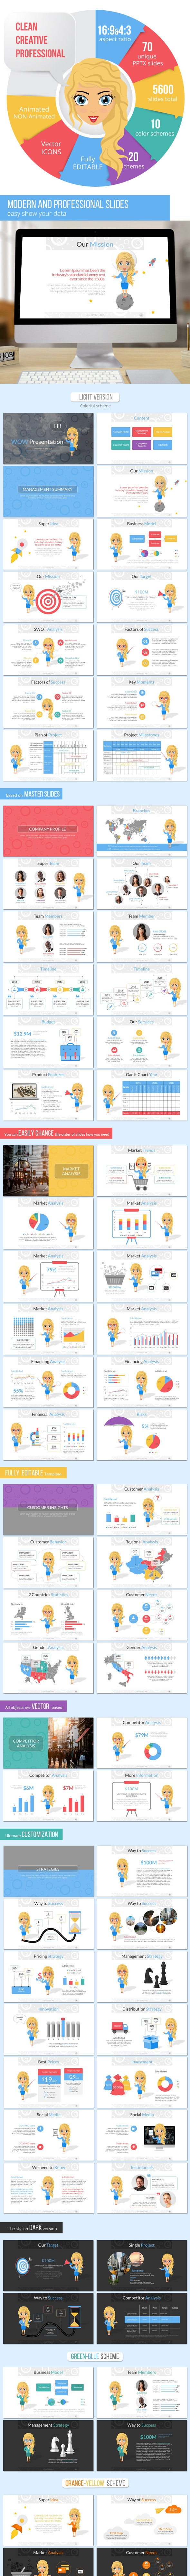 Business Plan with Ms. Jane Presentation Template - Pitch Deck PowerPoint Templates